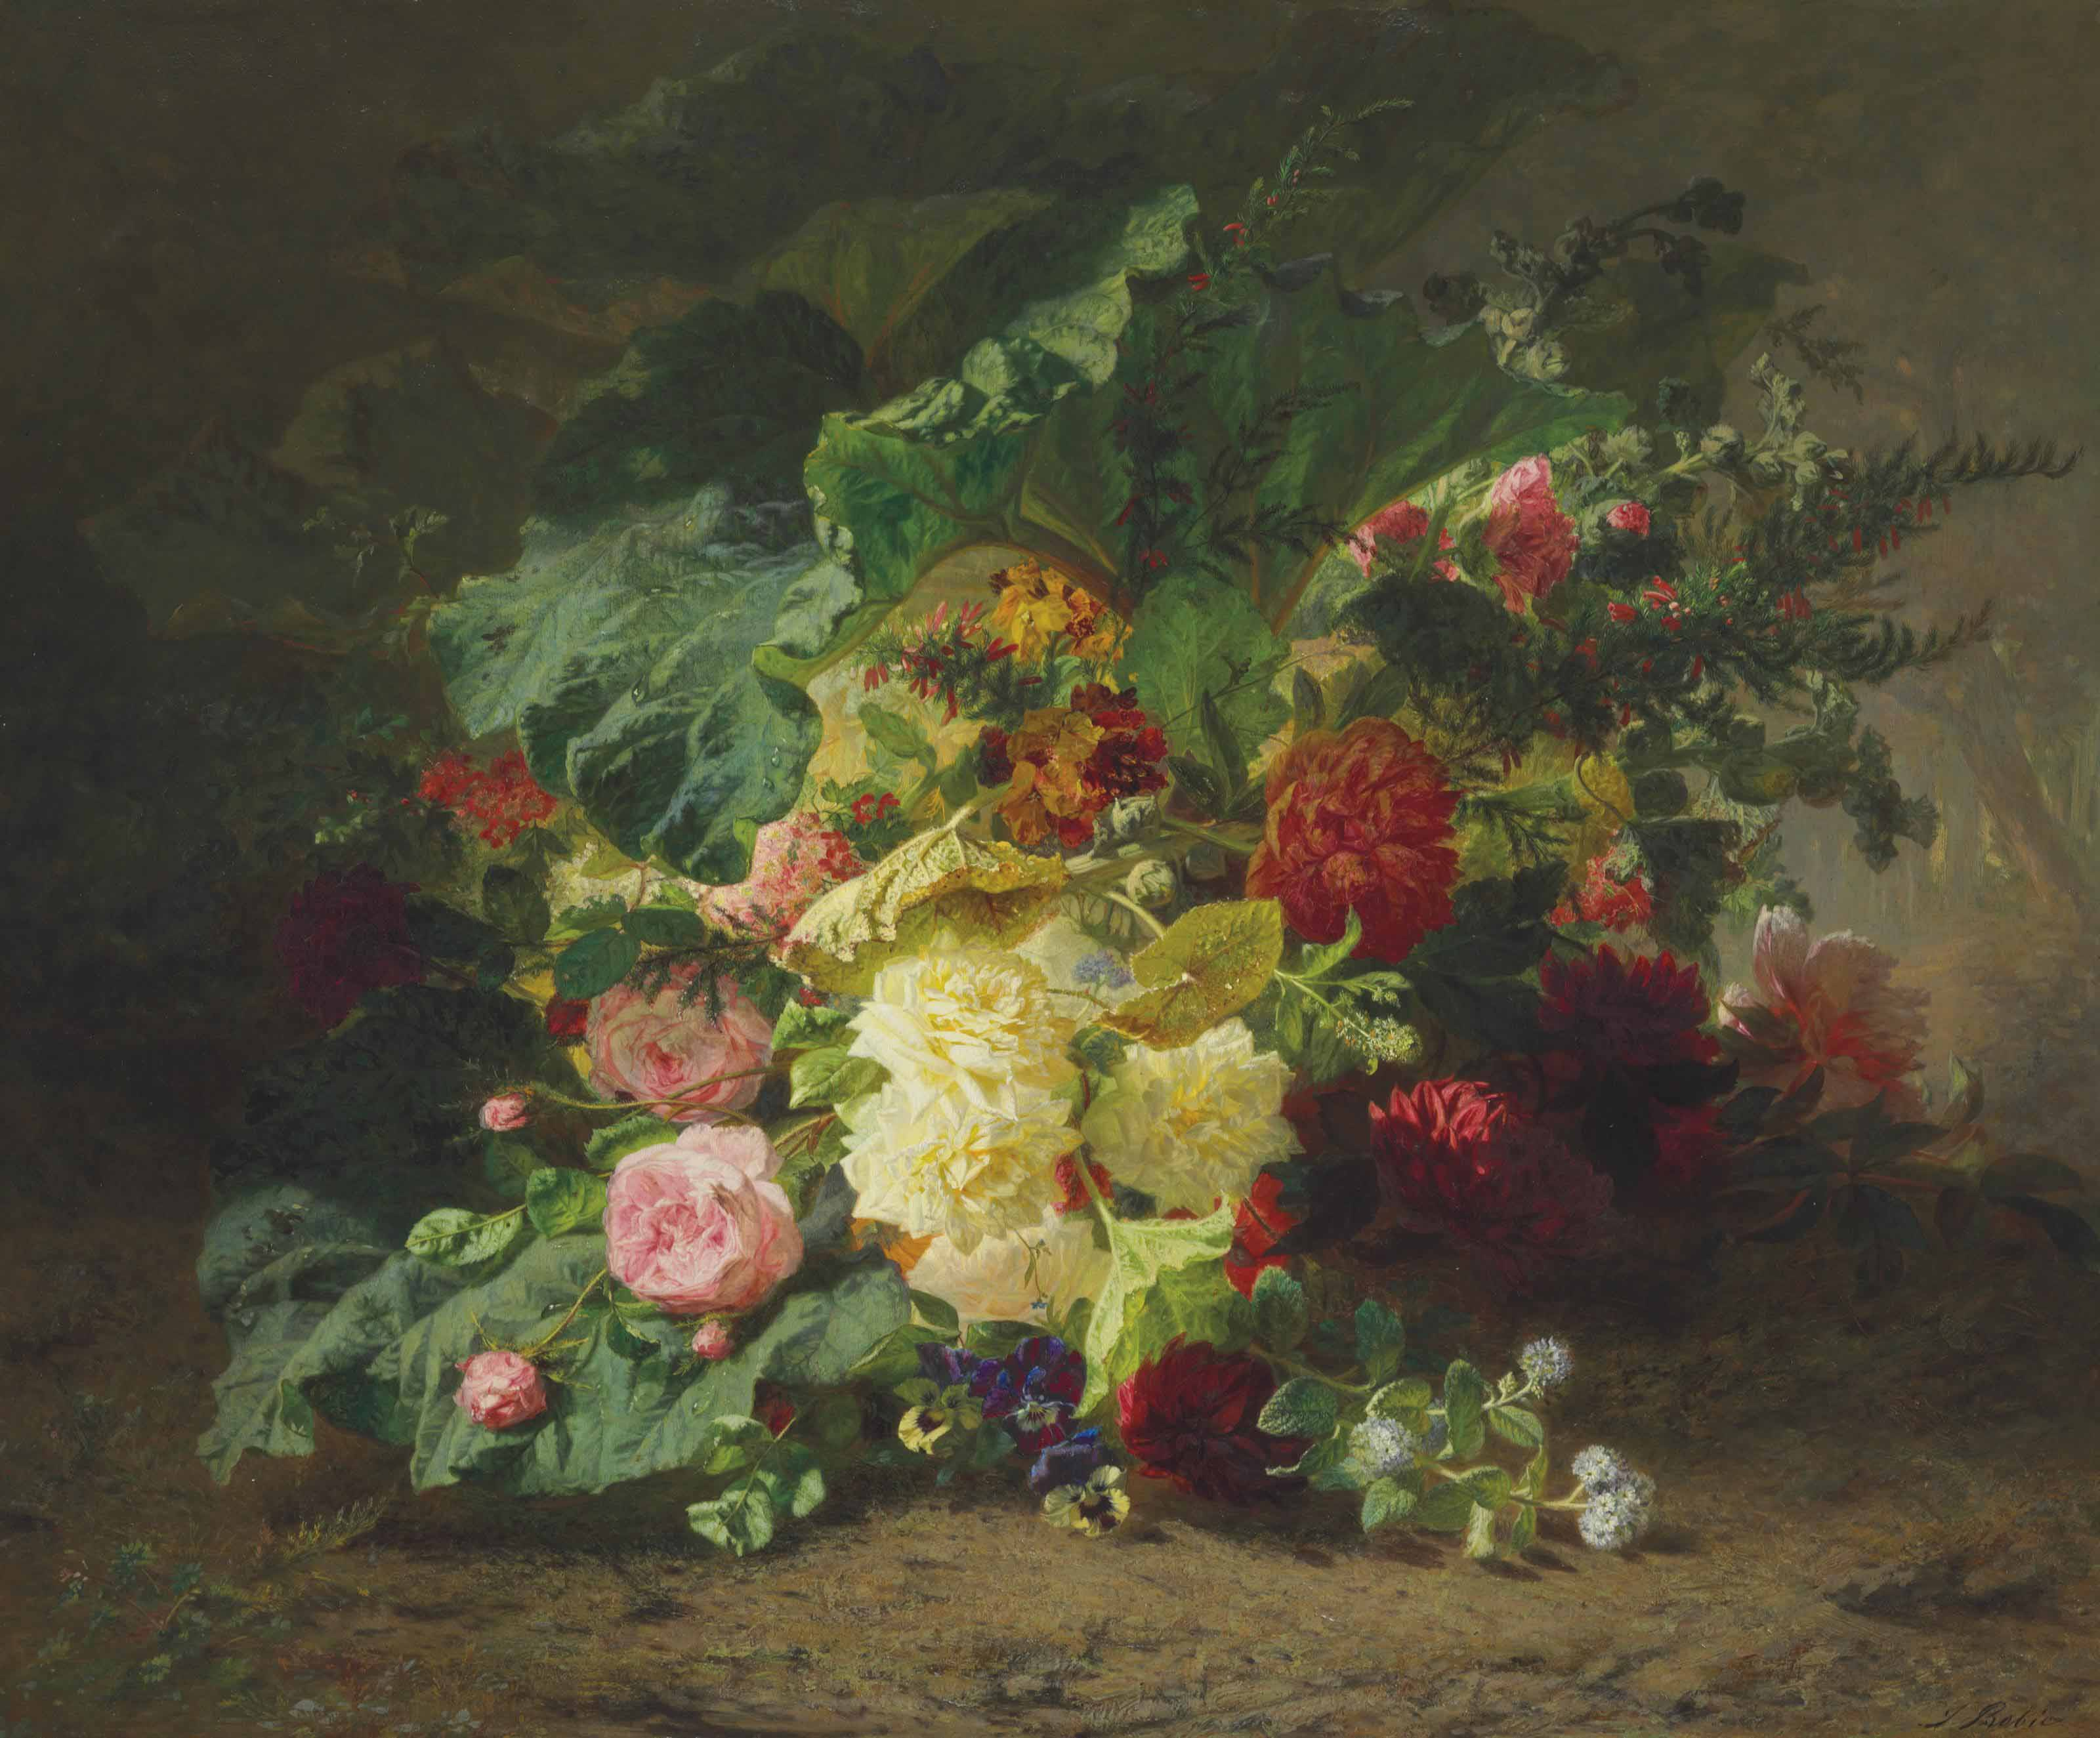 Roses and Wildflowers in a Forest